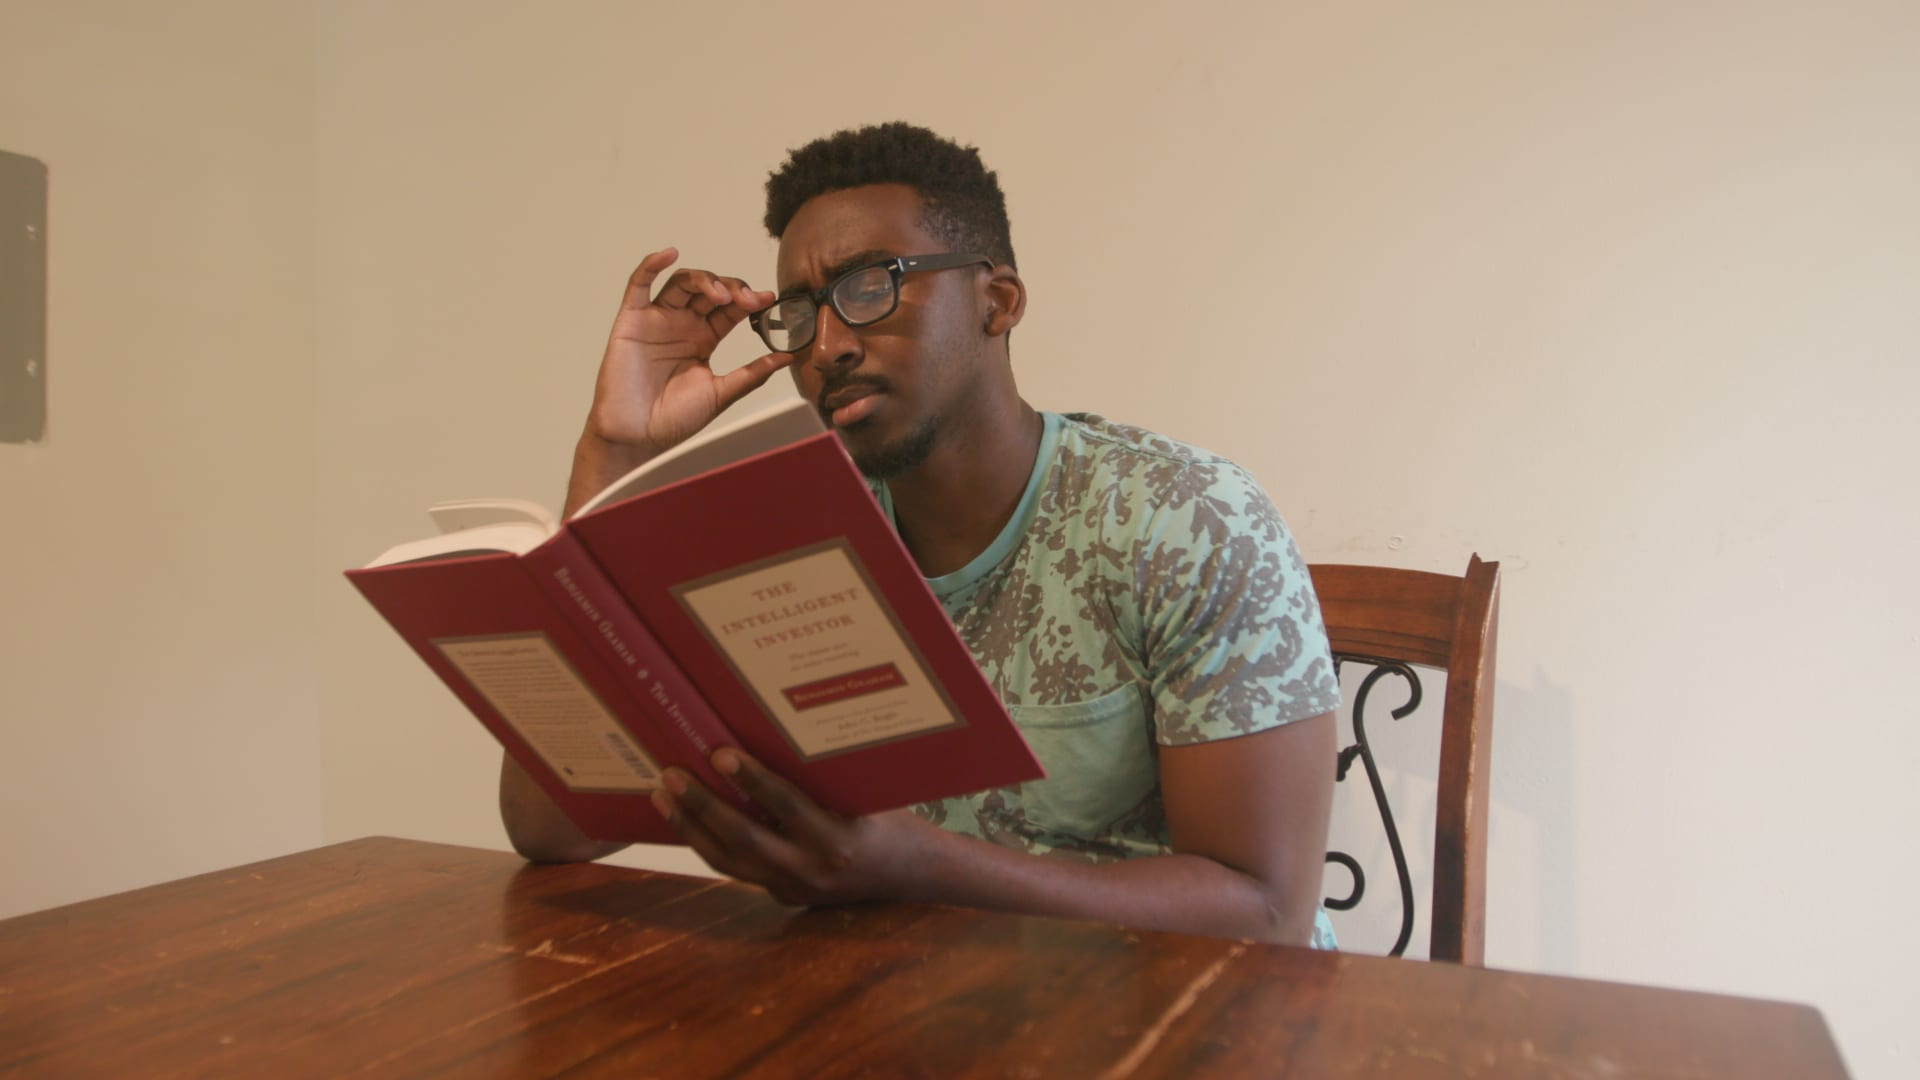 Jerone Gillespie's biggest splurge is on books since he spends as much time as he can reading. His favorite topics include science, business, self-development, money and investing.